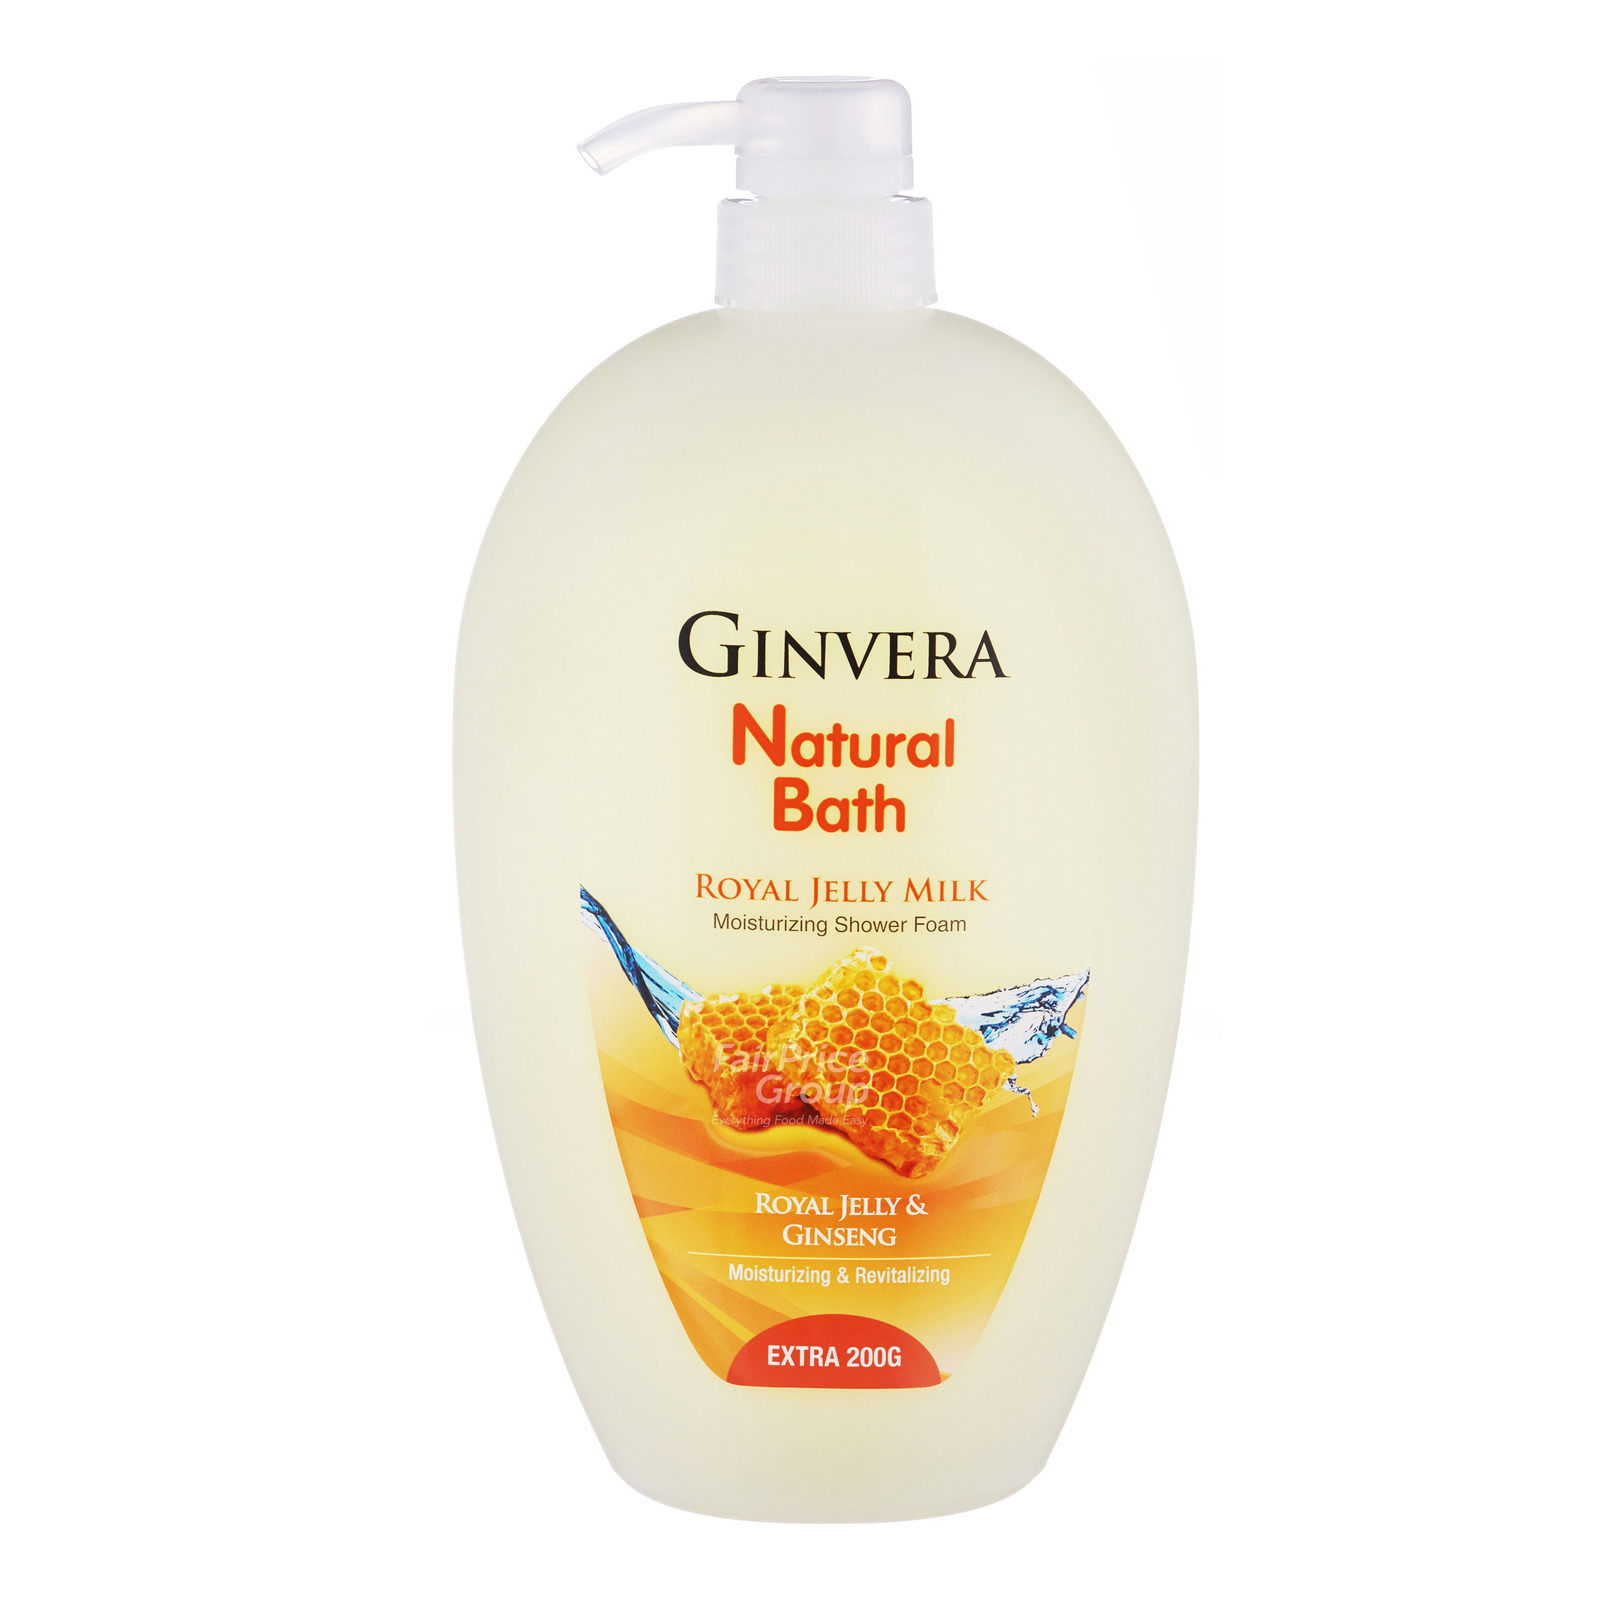 Ginvera Natural Bath Shower Foam - Royal Jelly Milk